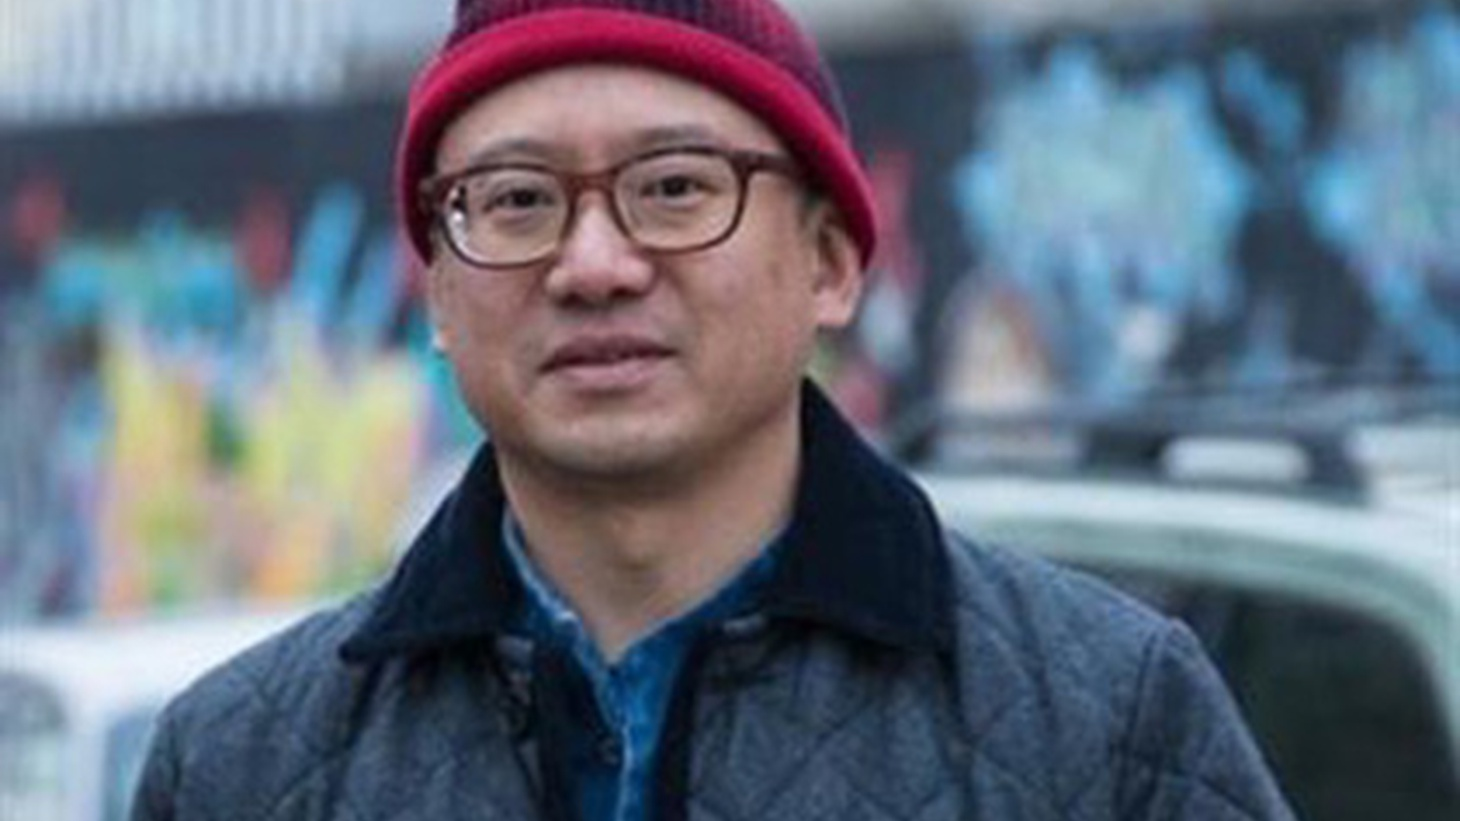 Author Hua Hsu stops by to discuss his book A Floating Chinaman, recounting the life of 1930's actor/writer H.T. Tsiang and his struggles entering the American literary world.